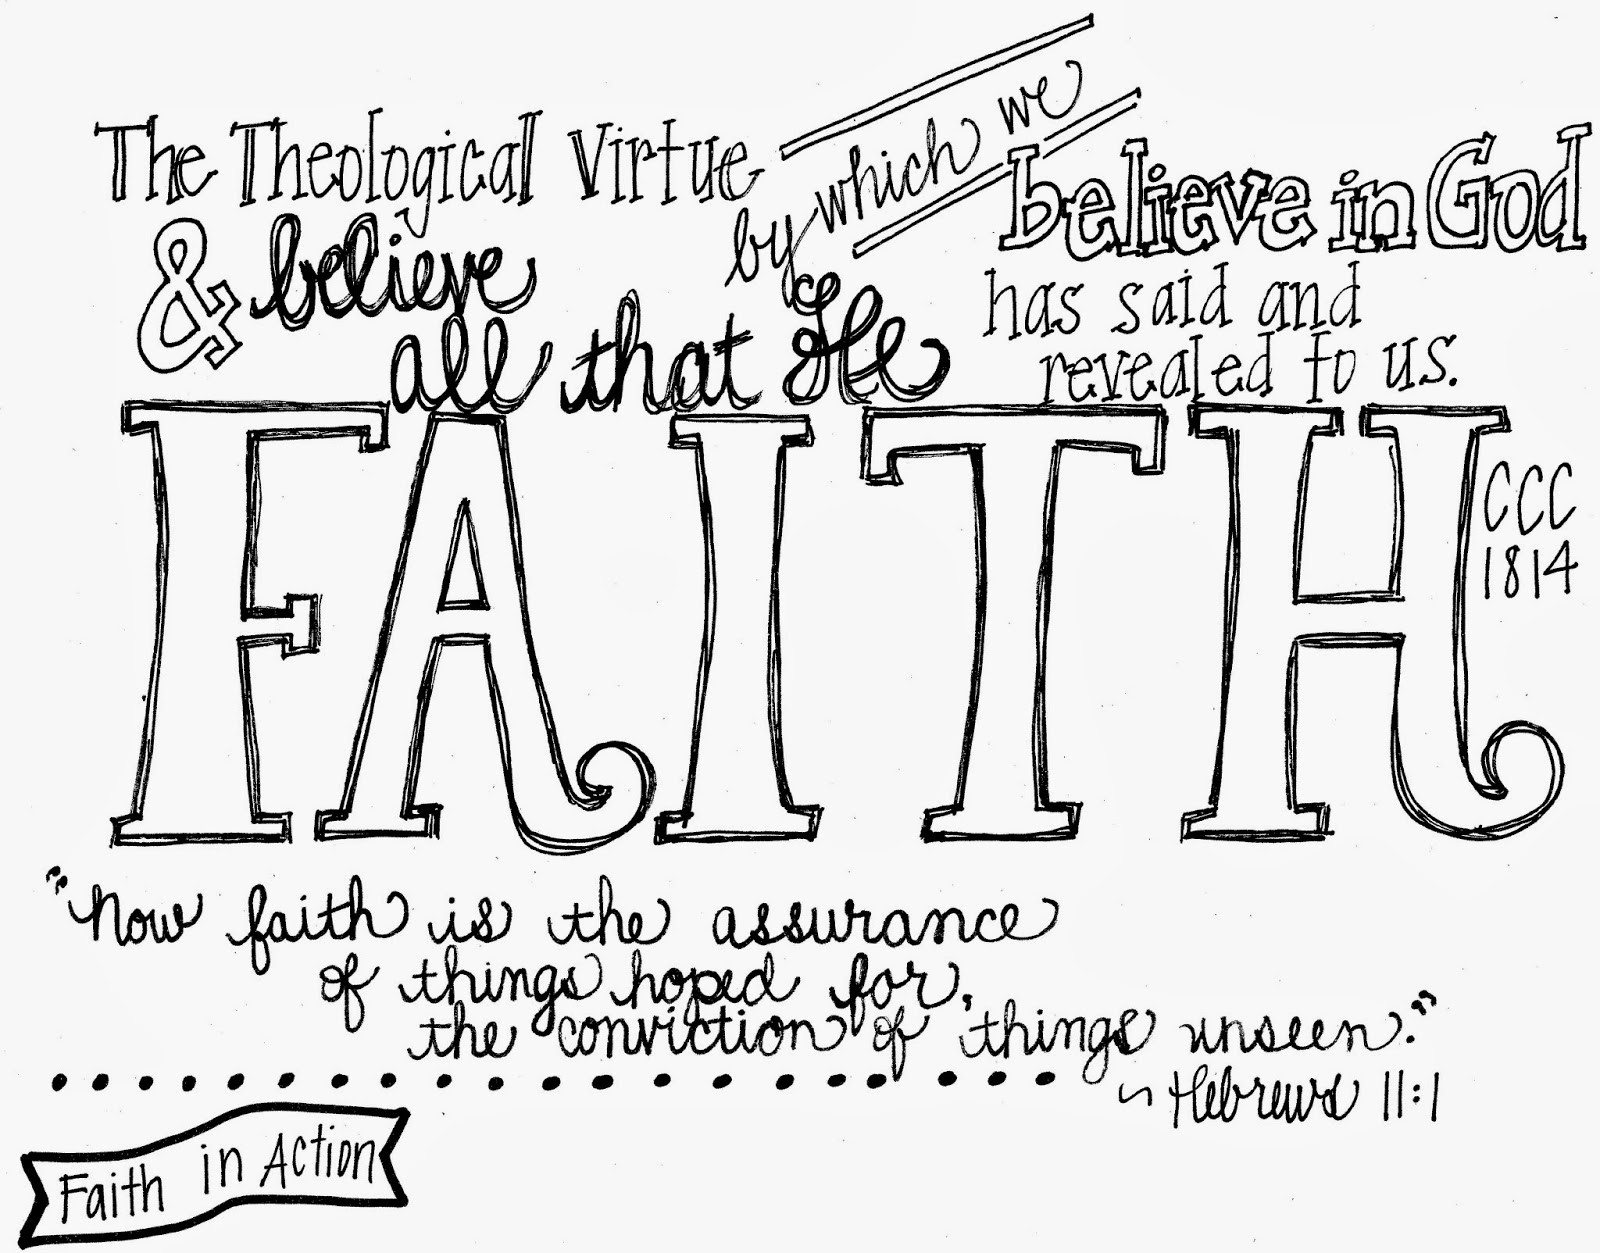 coloring pages for catholic faith | Look to Him and be Radiant: The Theological Virtues